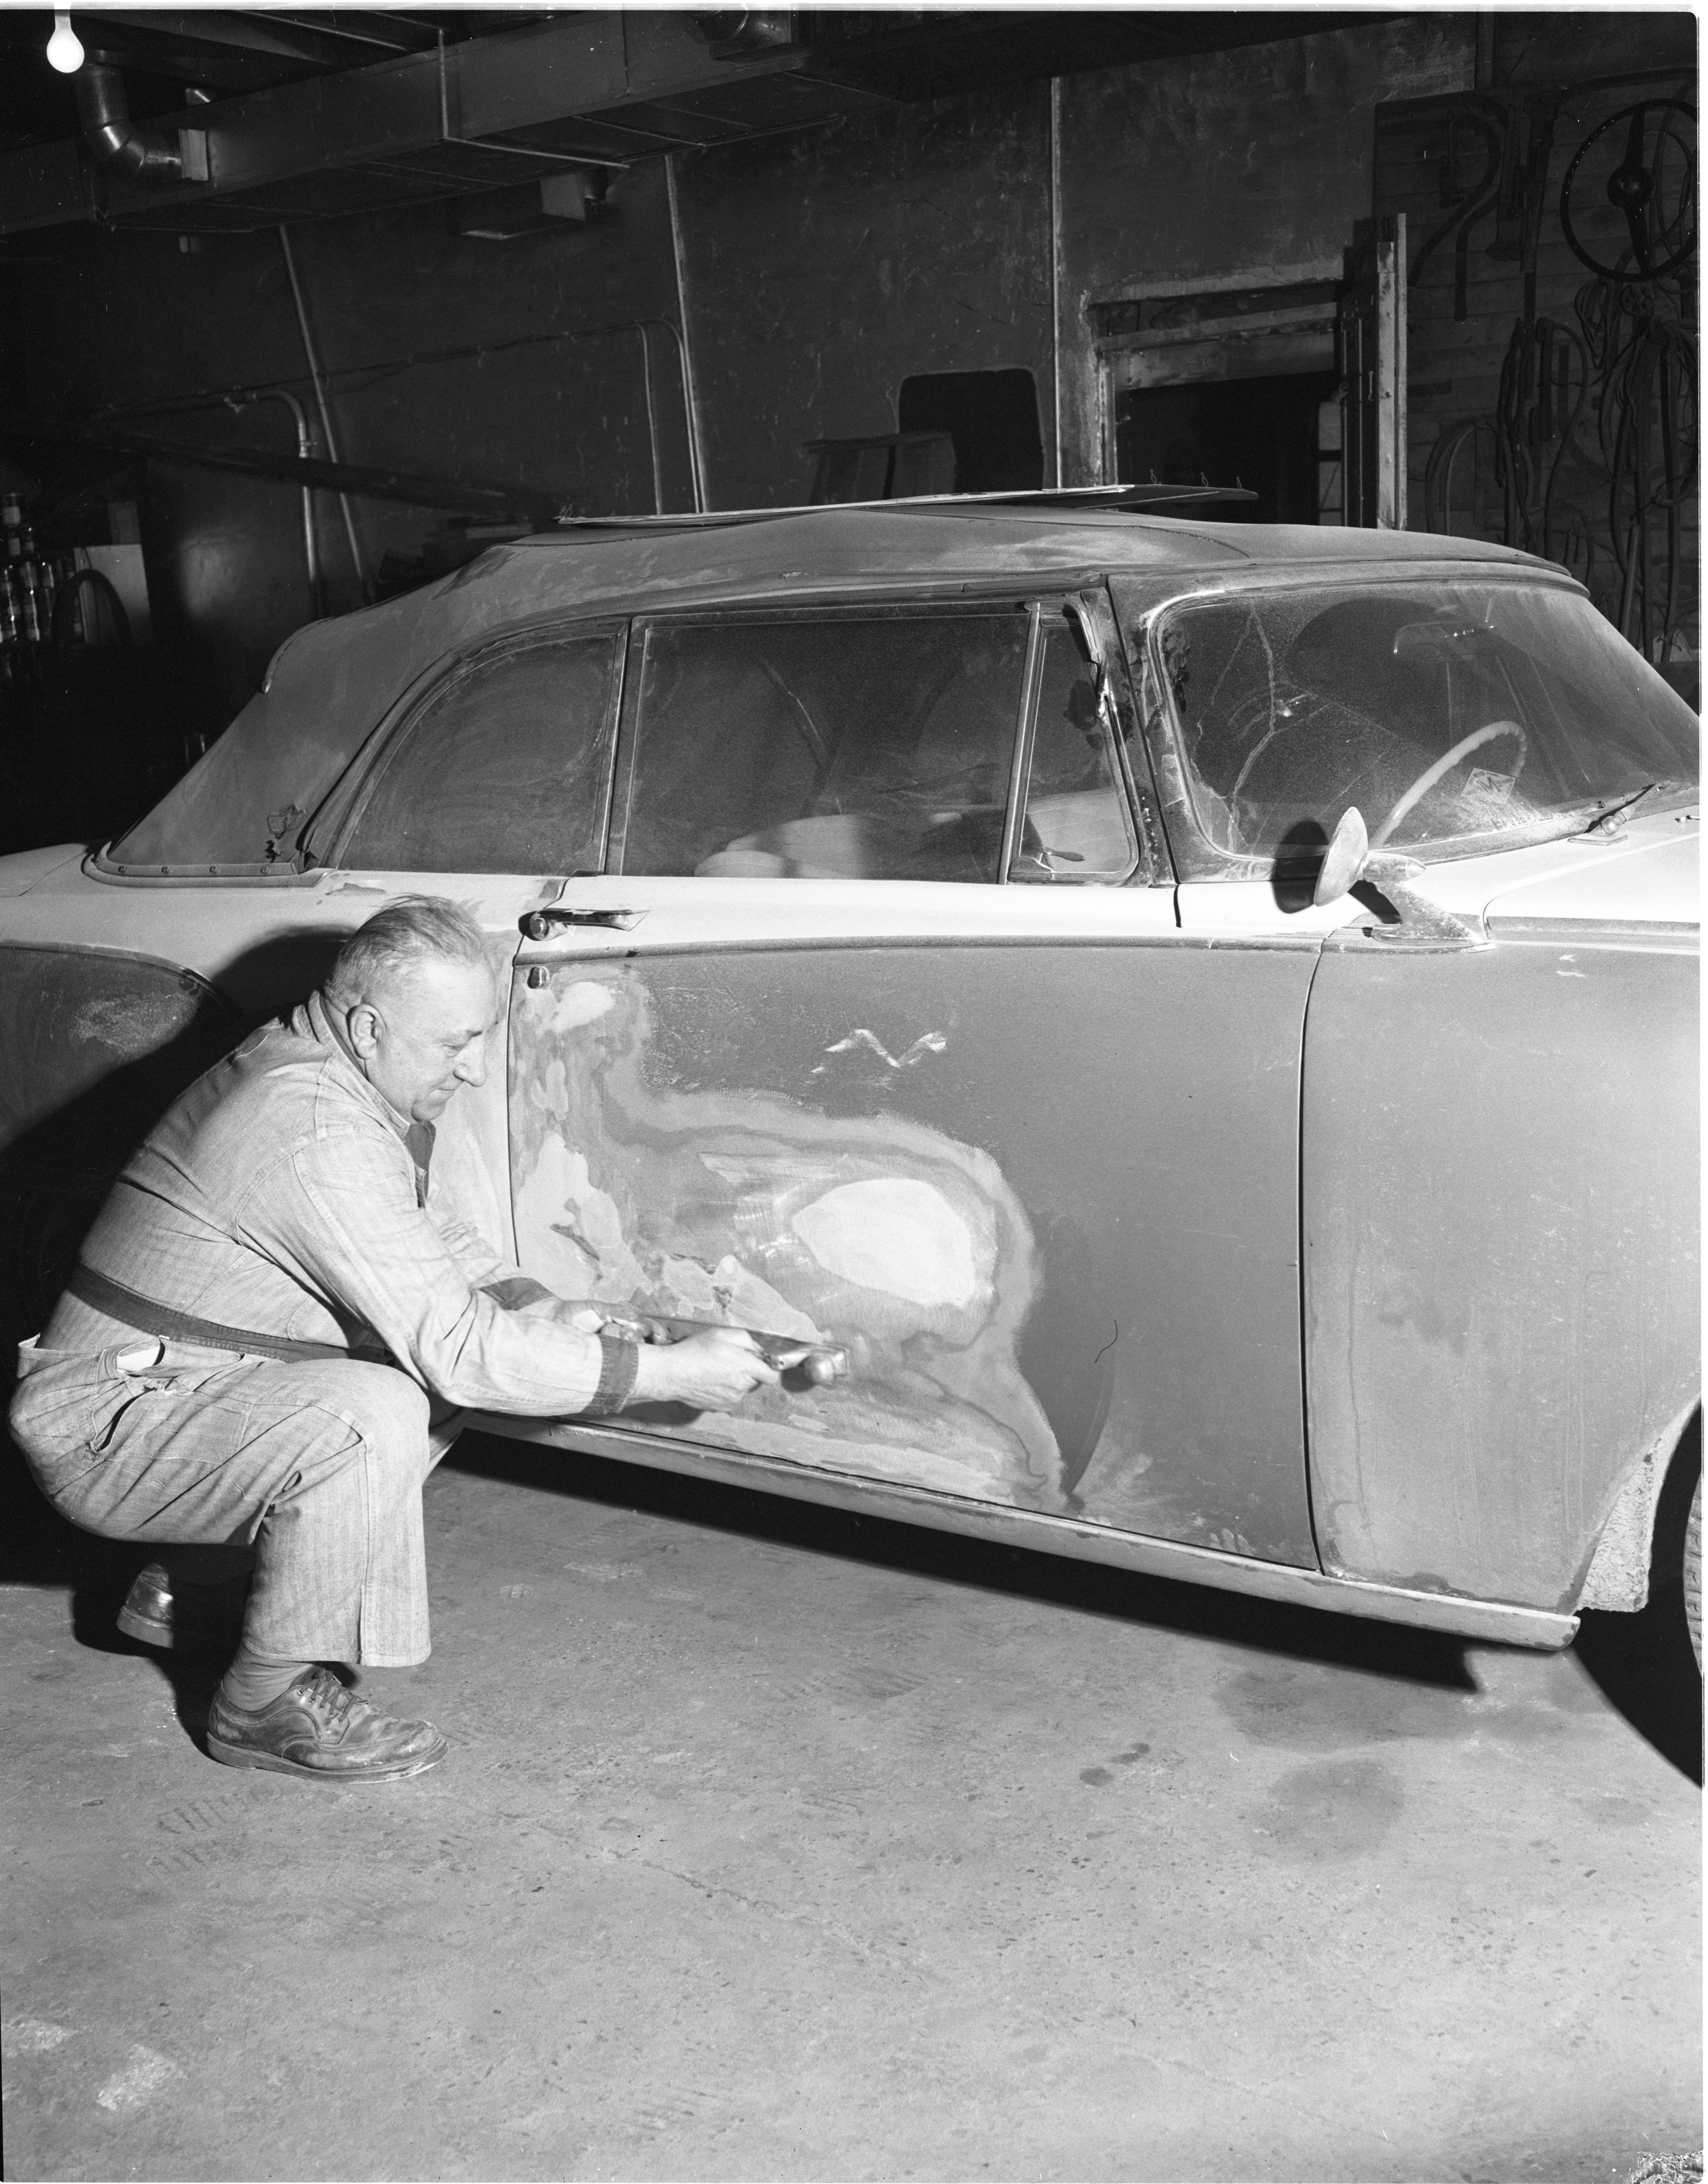 Charles Yahr Works On A Car At His Garage, January 1959 image